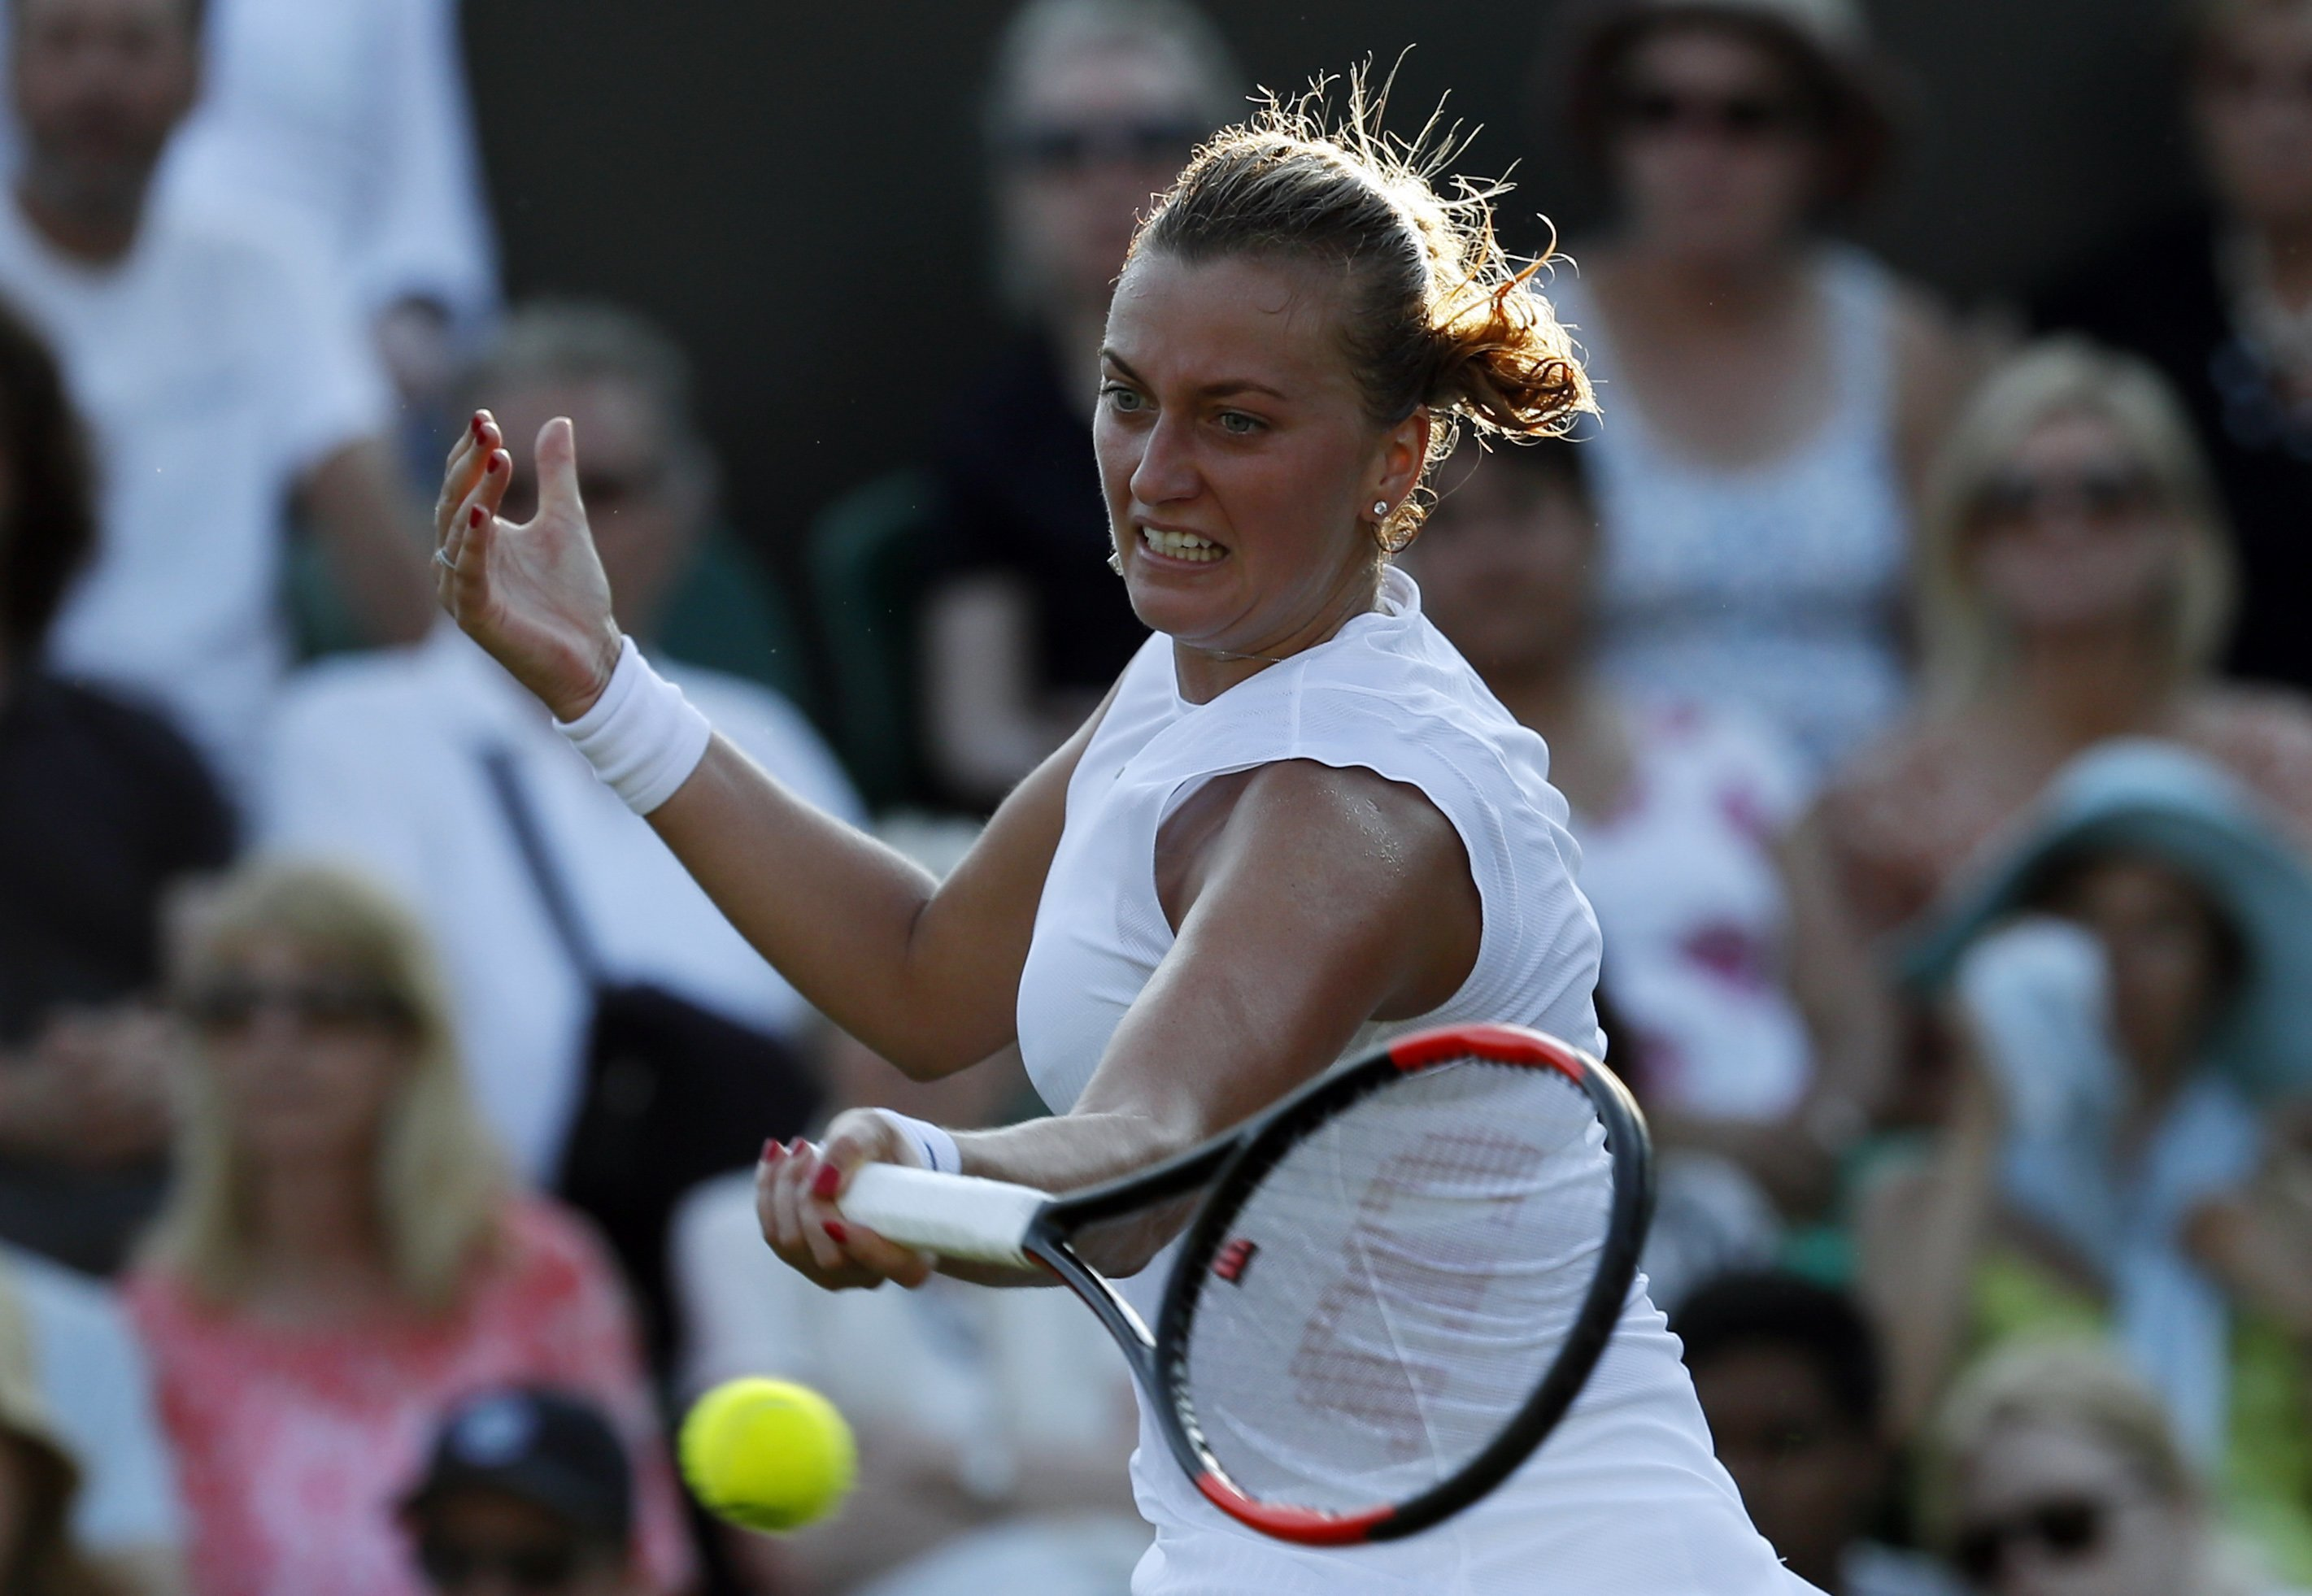 Czech Republic's Petra Kvitova returns to Madison Brengle of the United States during their Women's Single Match on day three at the Wimbledon Tennis Championships in London Wednesday, July 5, 2017. (AP Photo/Kirsty Wigglesworth)